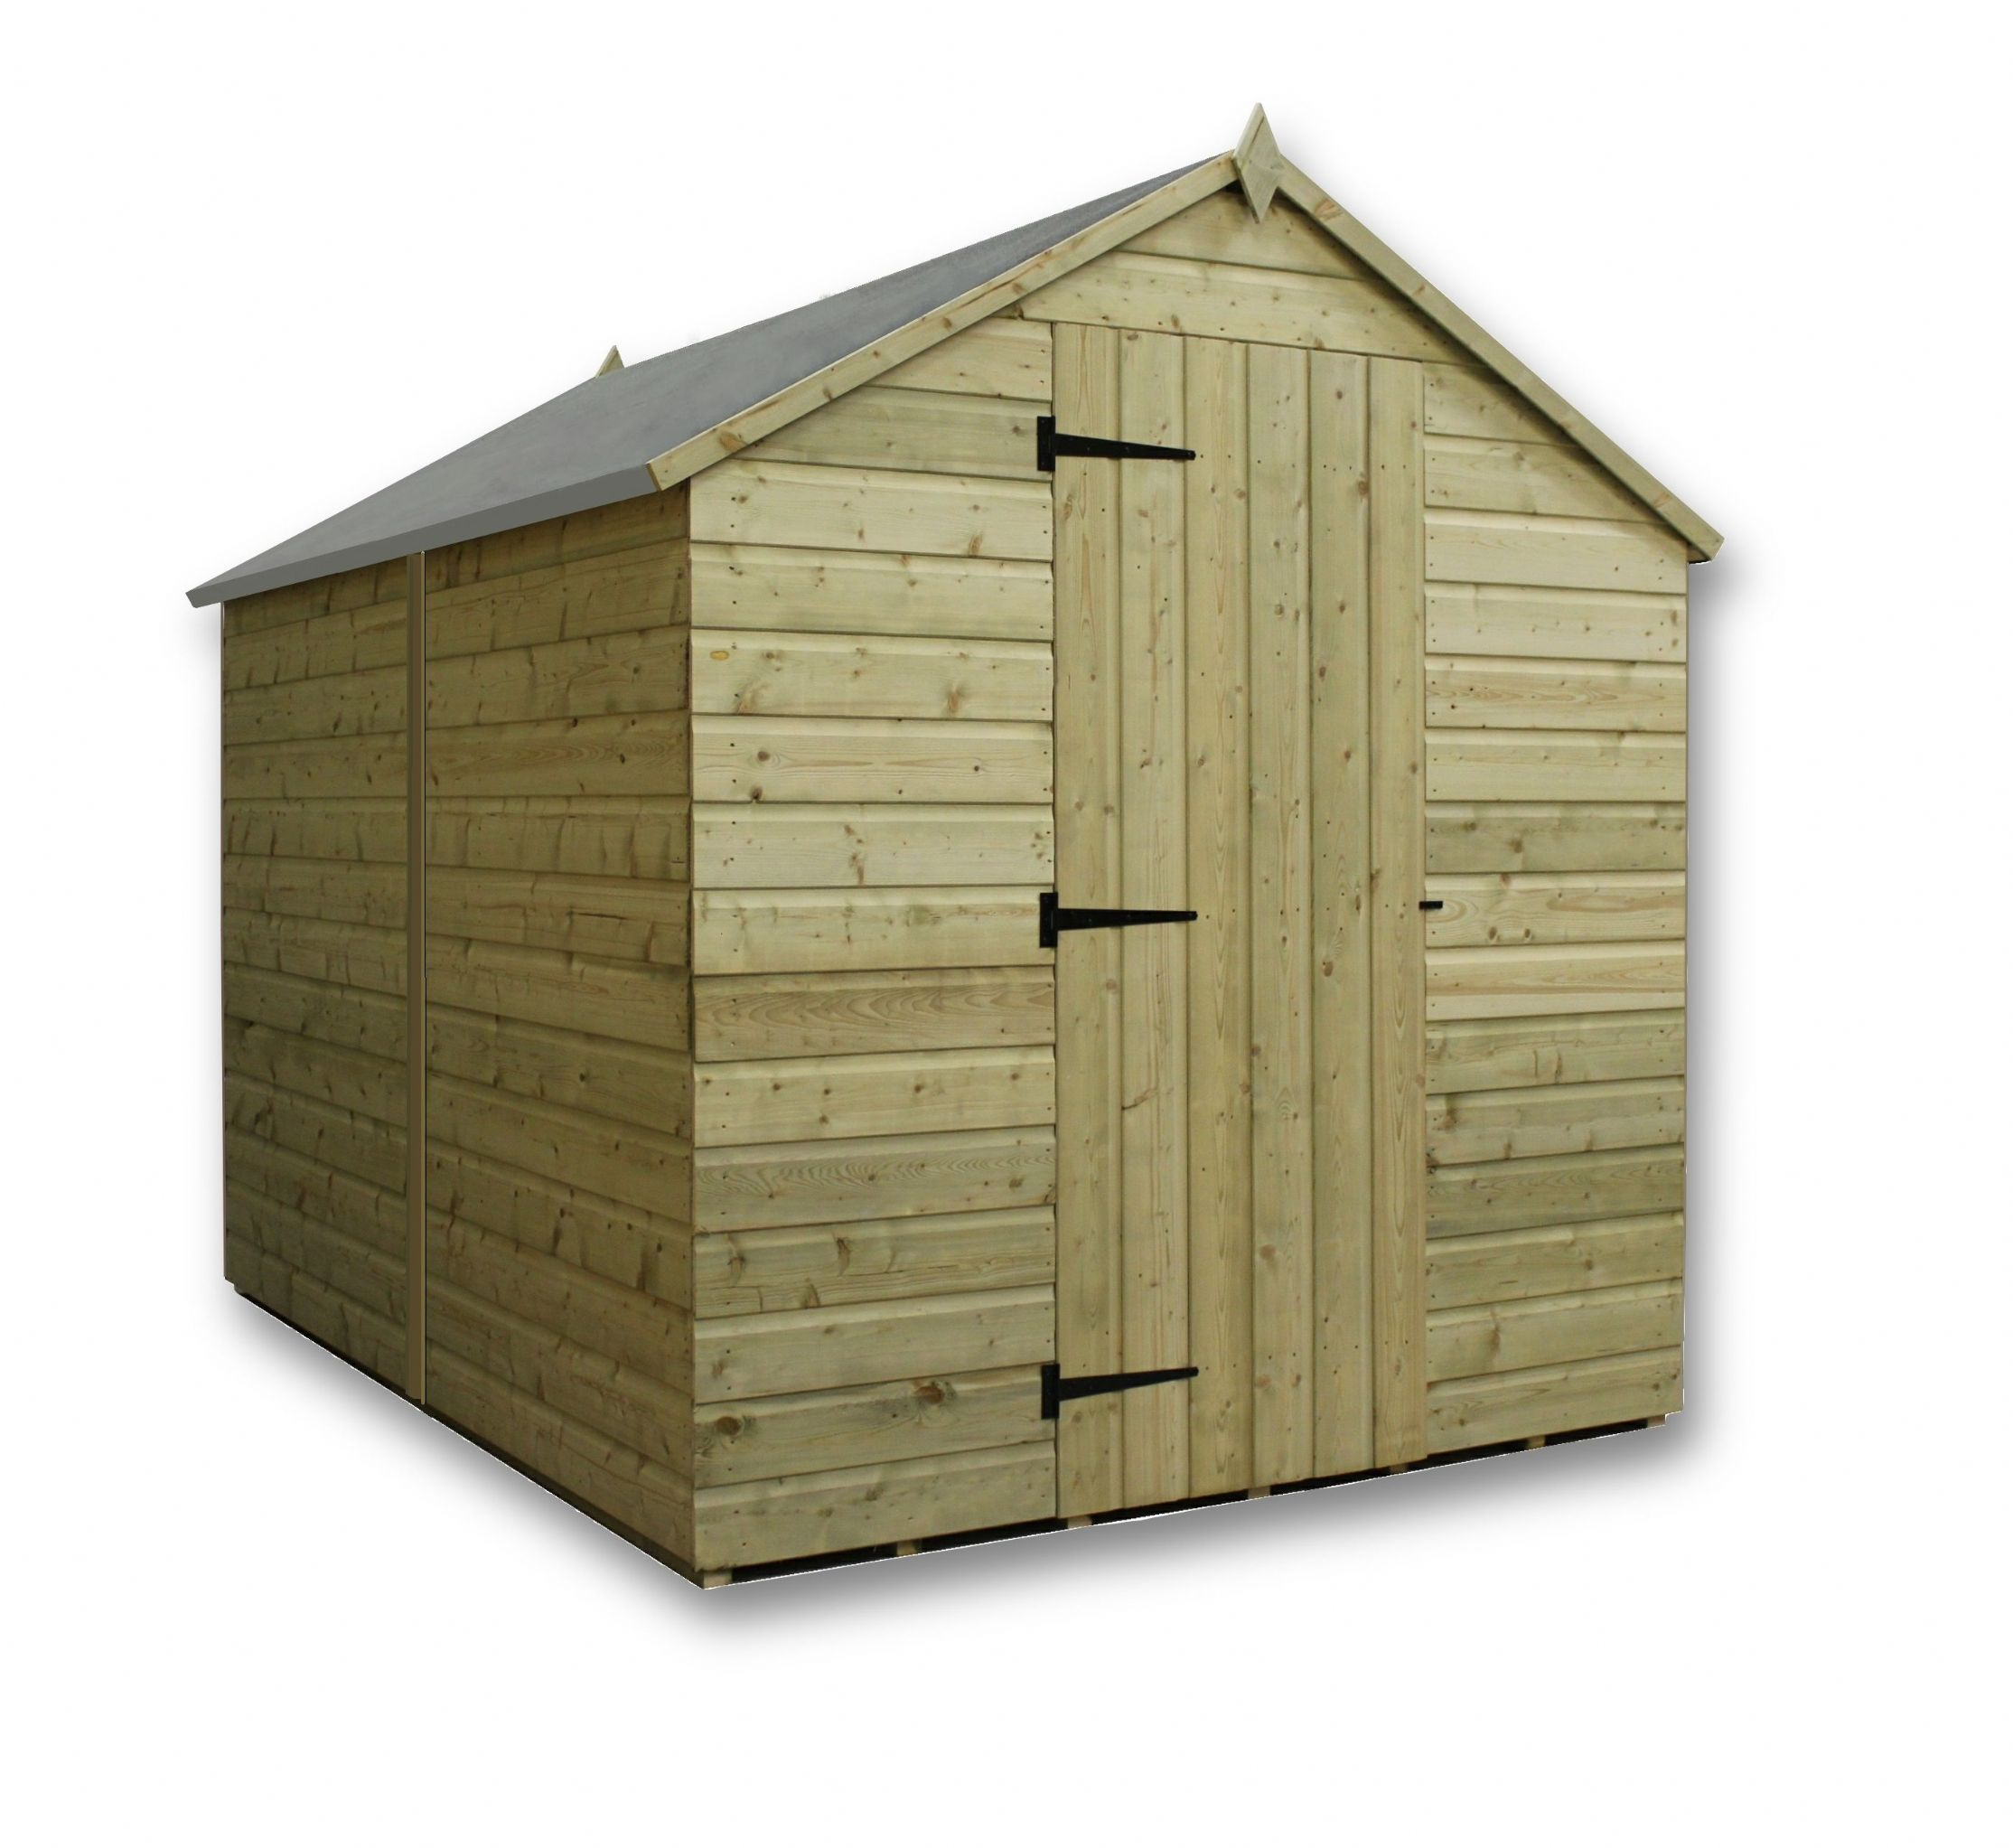 empire 6500 apex shed various sizes - Garden Sheds 7x6